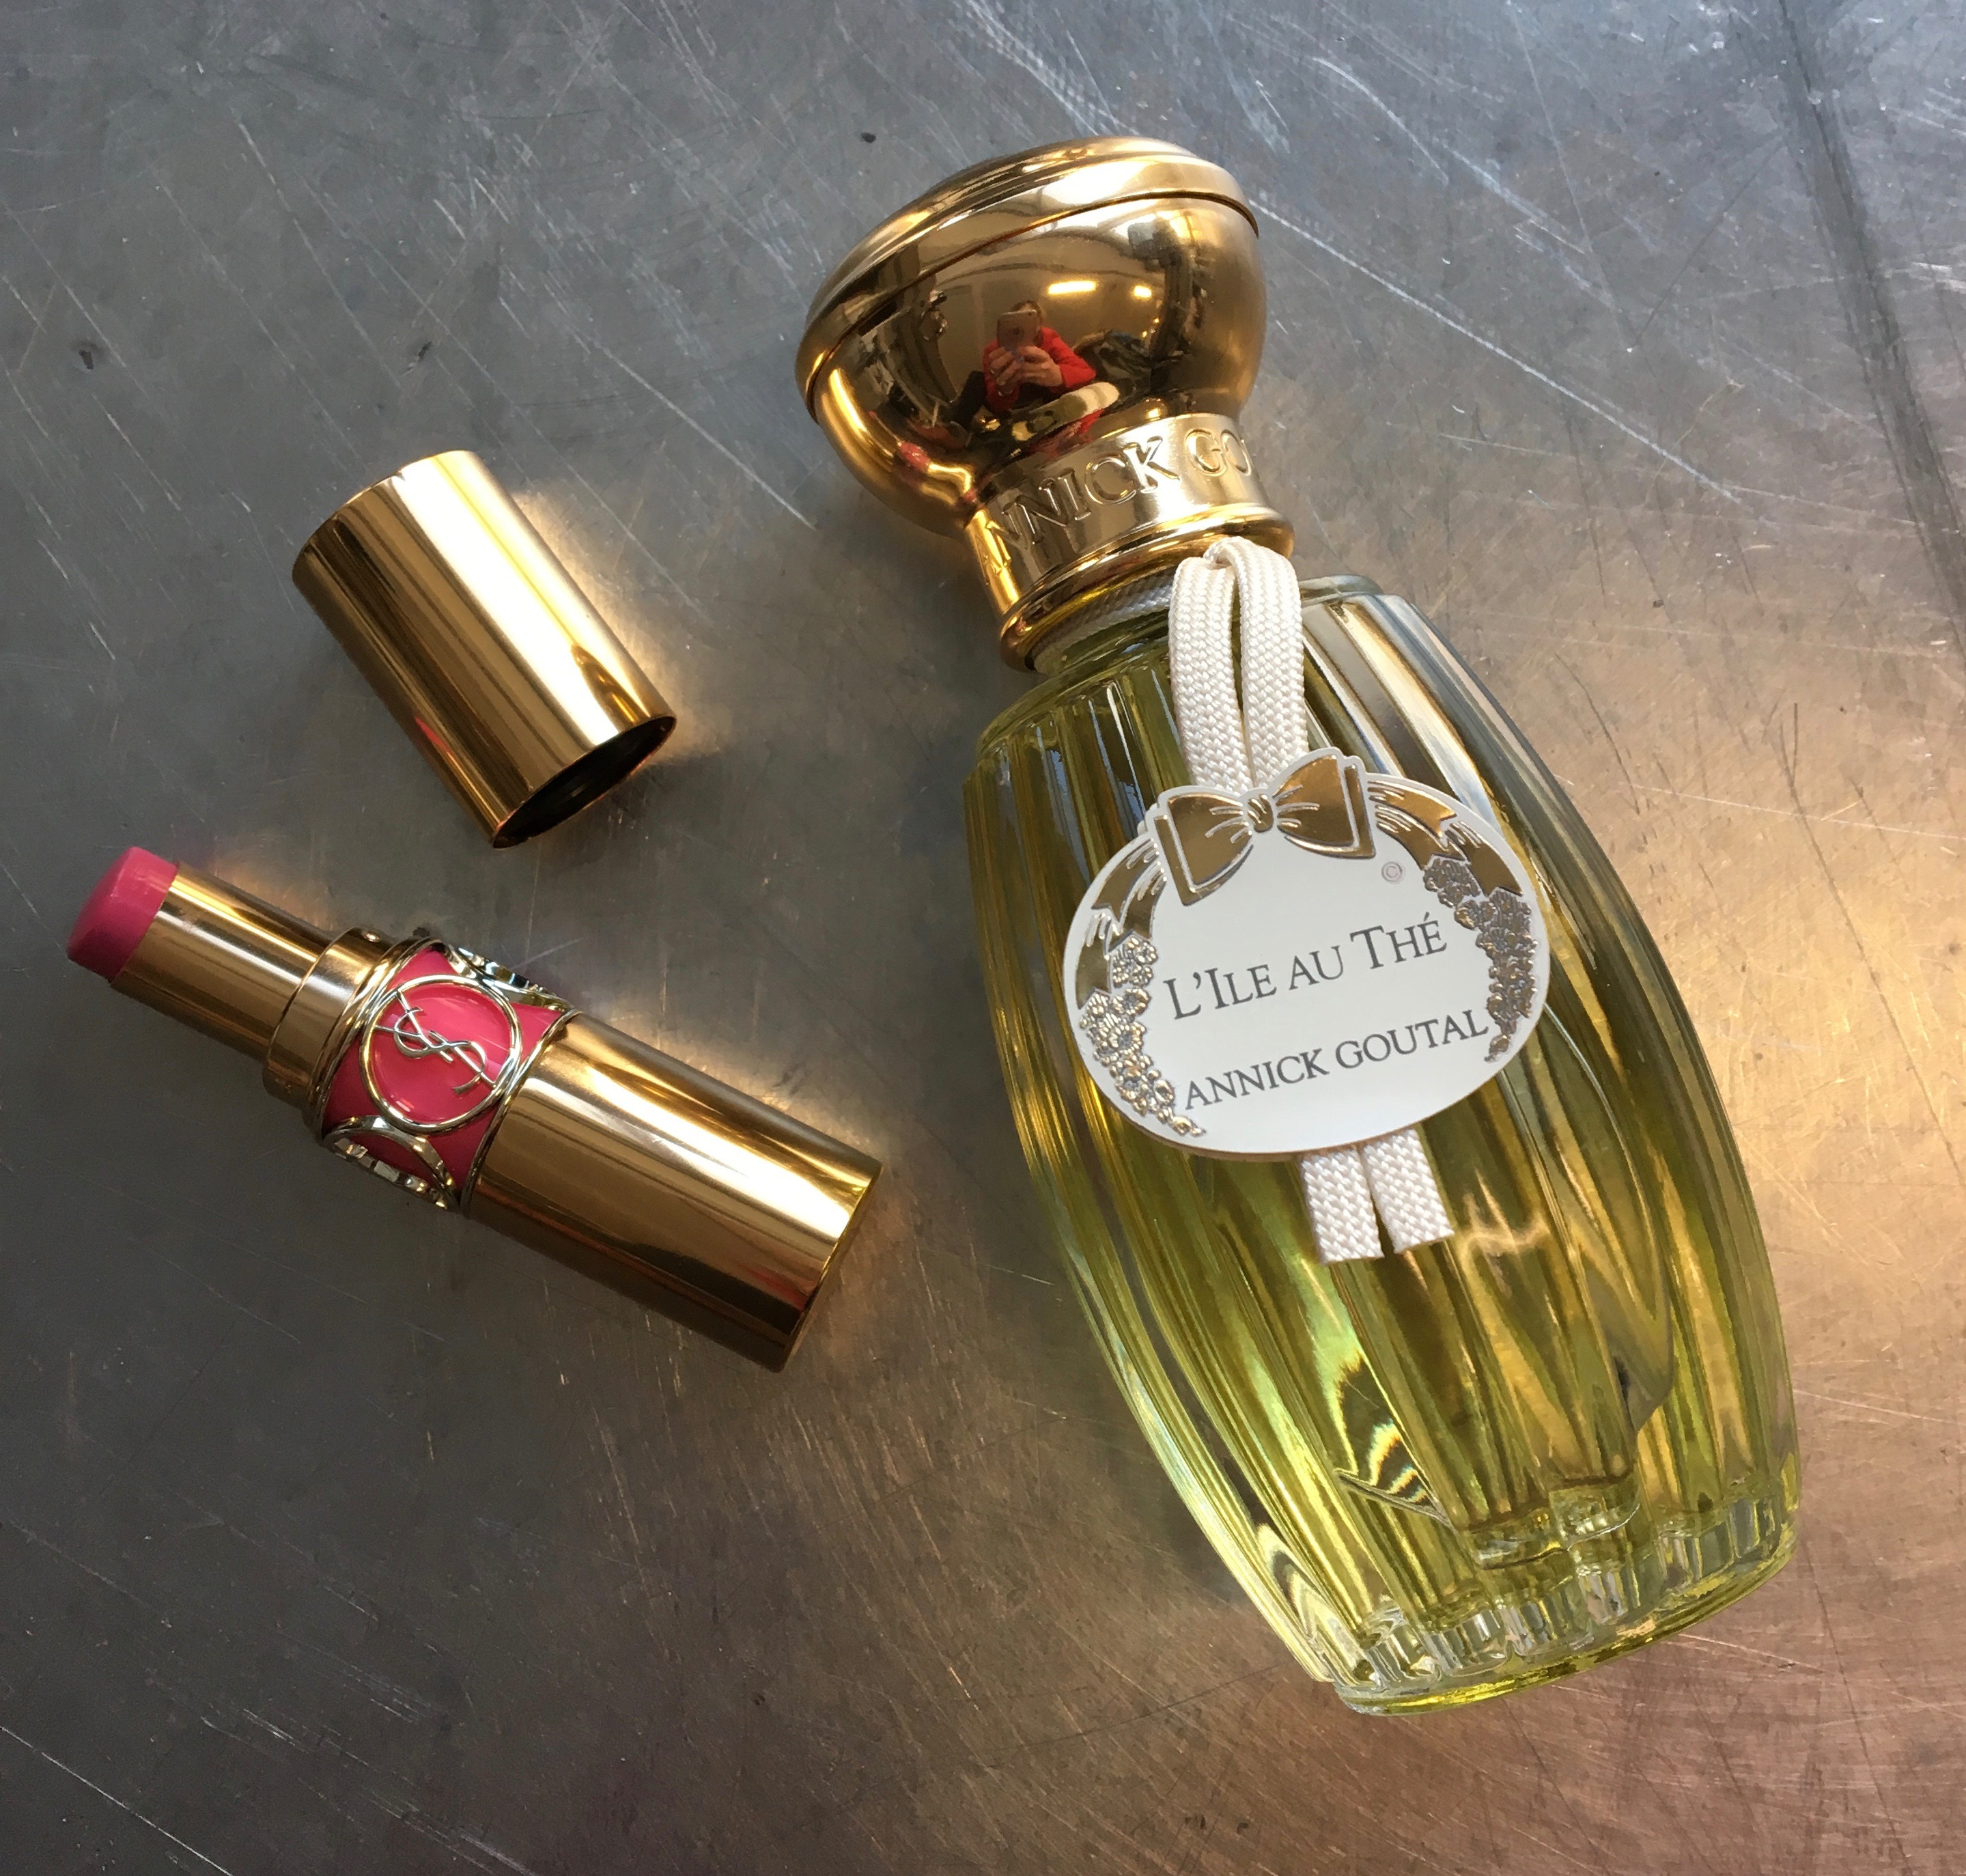 Annick Goutal Perfume Review